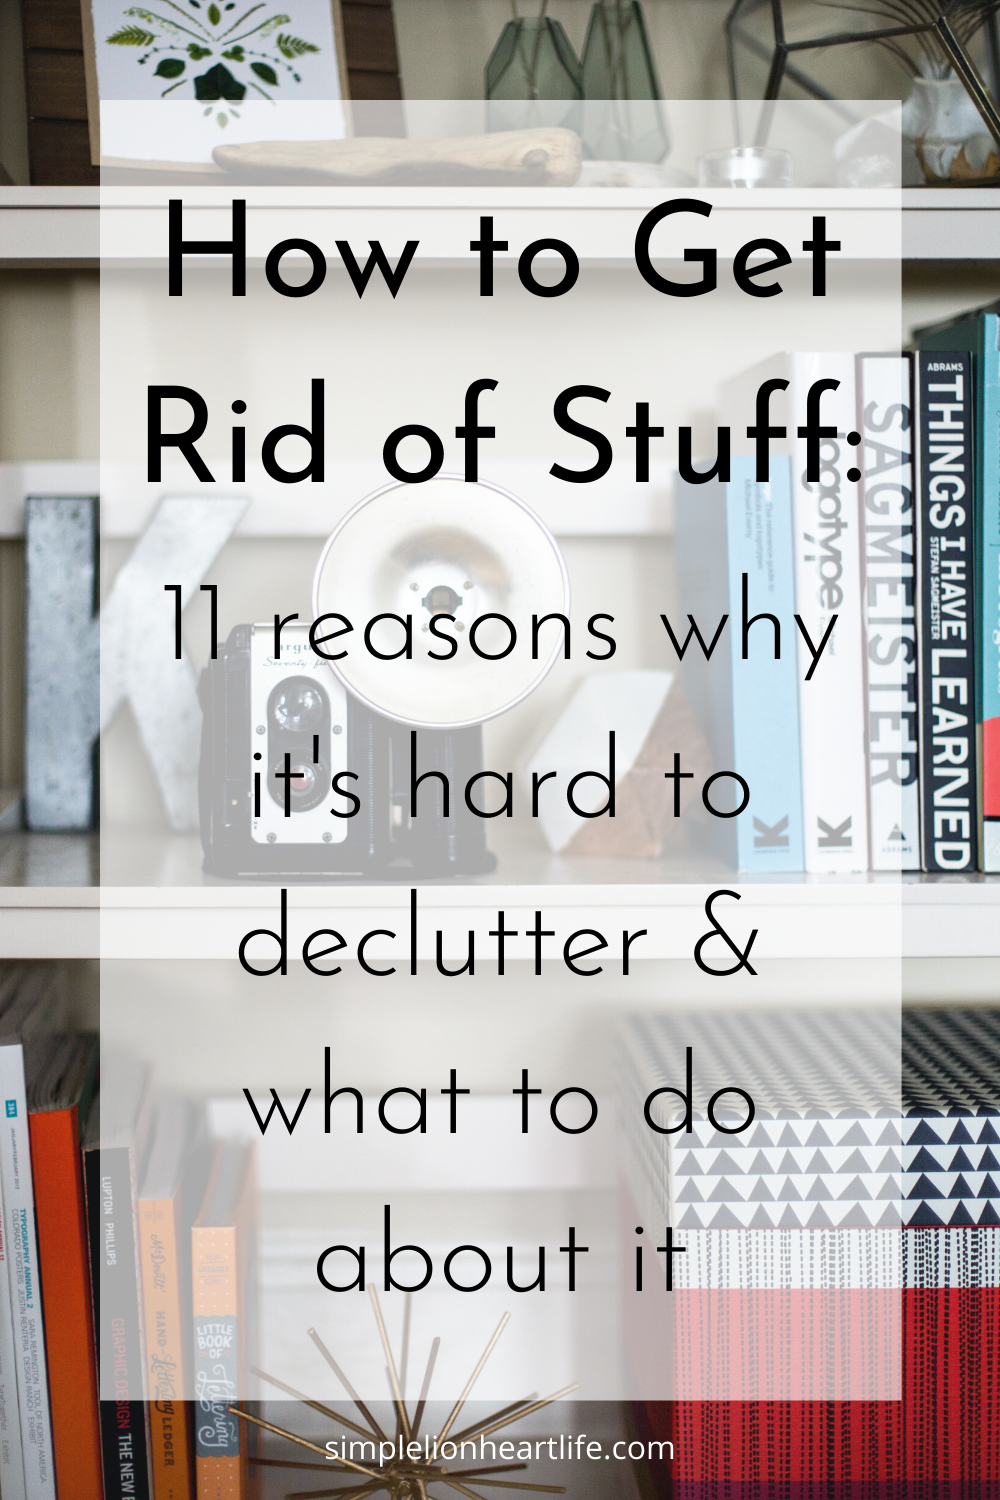 How To Get Rid Of Stuff 11 Reasons Why It S Hard To Declutter What To Do About It Simple Lionheart Life In 2020 Declutter Declutter Your Home Declutter Your Life